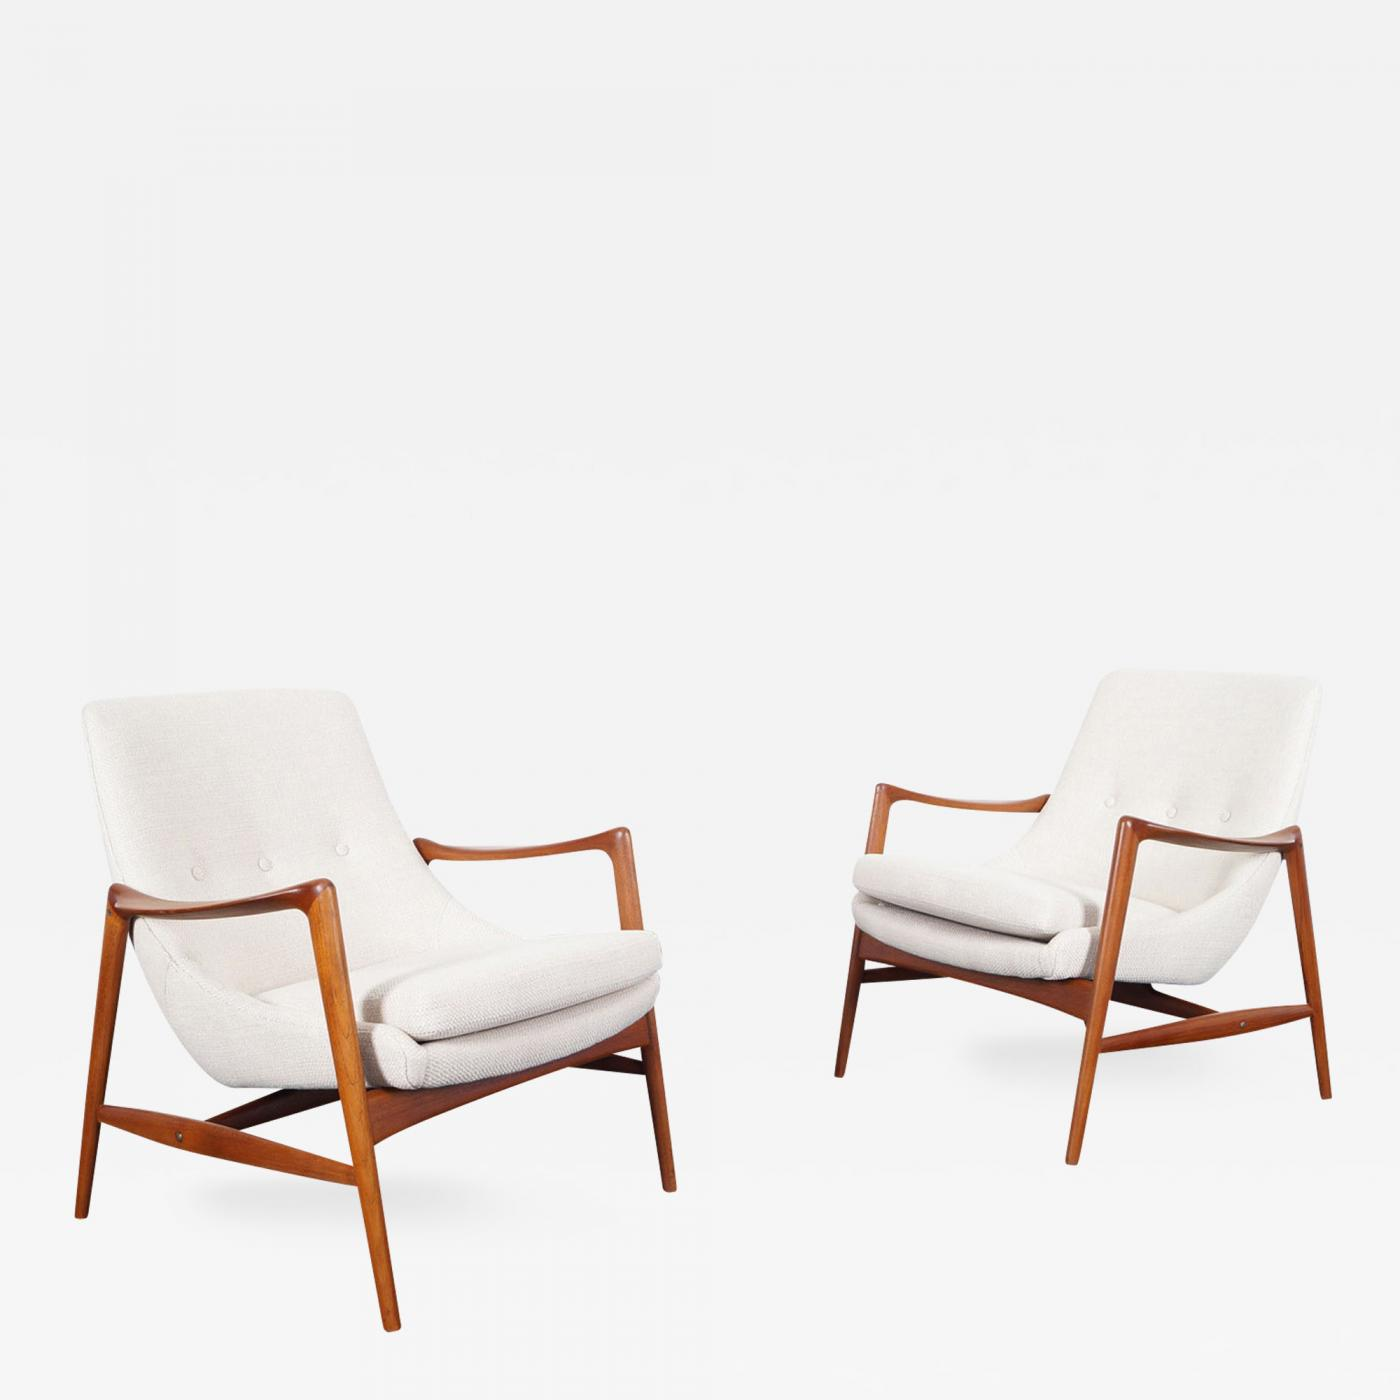 Listings / Furniture / Seating / Armchairs · Rastad Relling Norwegian Teak Lounge Chairs ... & Rastad u0026 Relling - Norwegian Teak Lounge Chairs by Peter Wessel